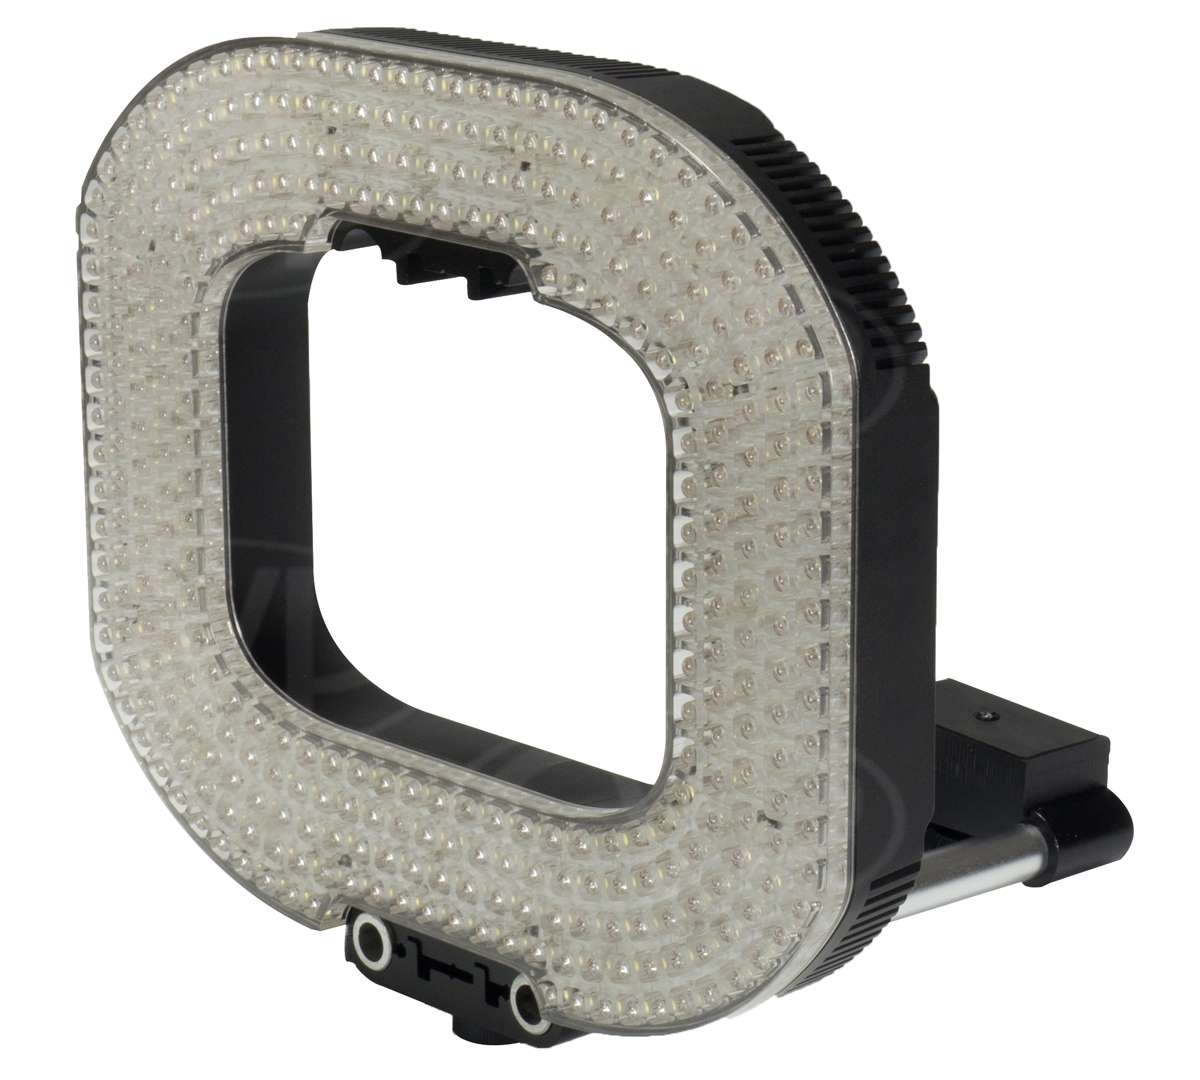 Datavision DVS-LEDGO-R332 (DVSLEDGOR332) LEDGO-R332 Dimmable Camera LED Ringlight